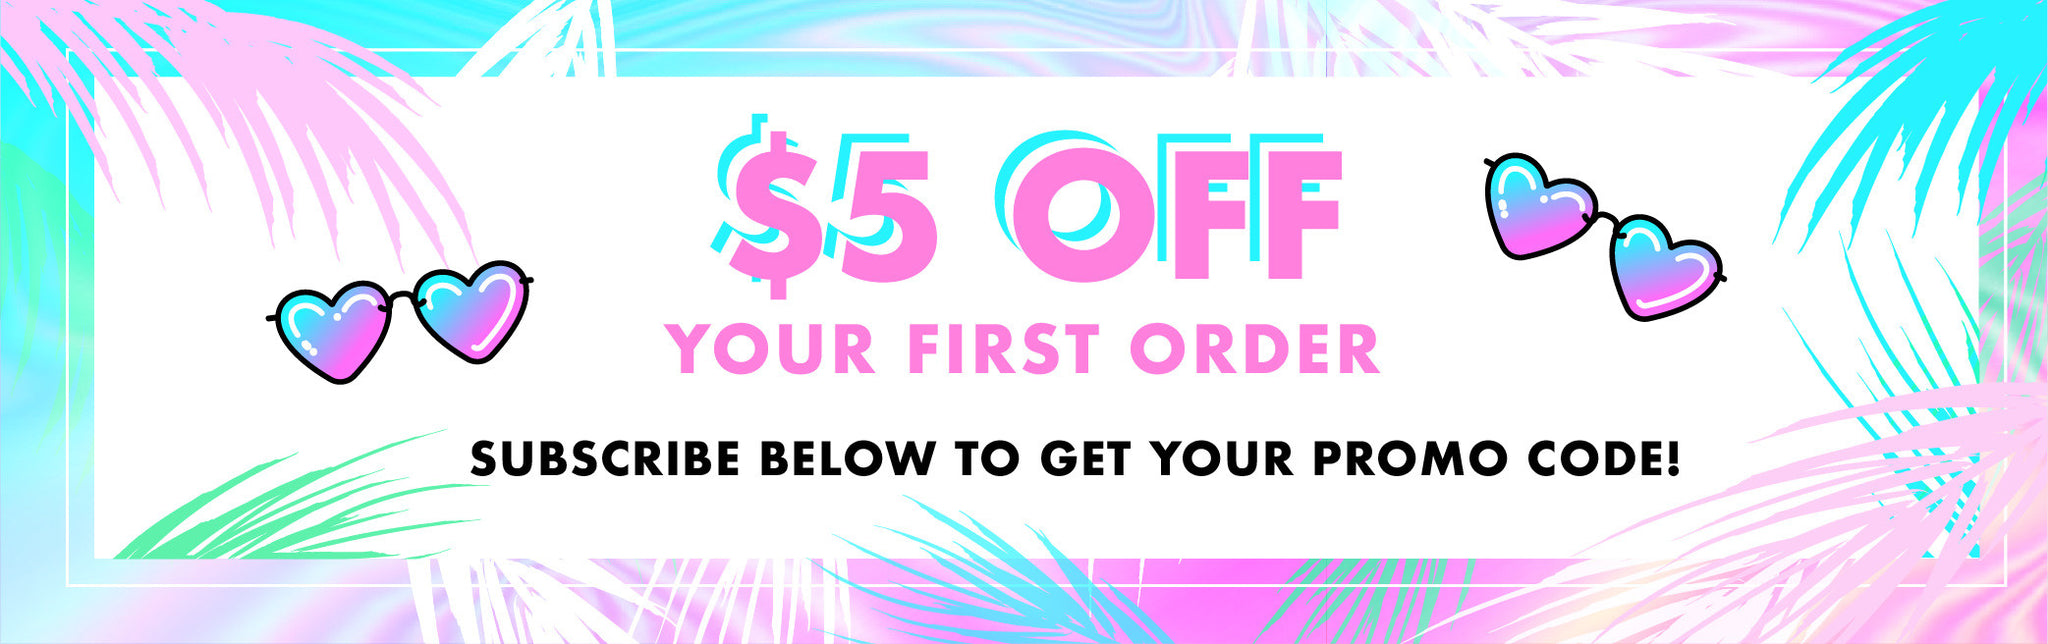 $5 off your first order promo banner